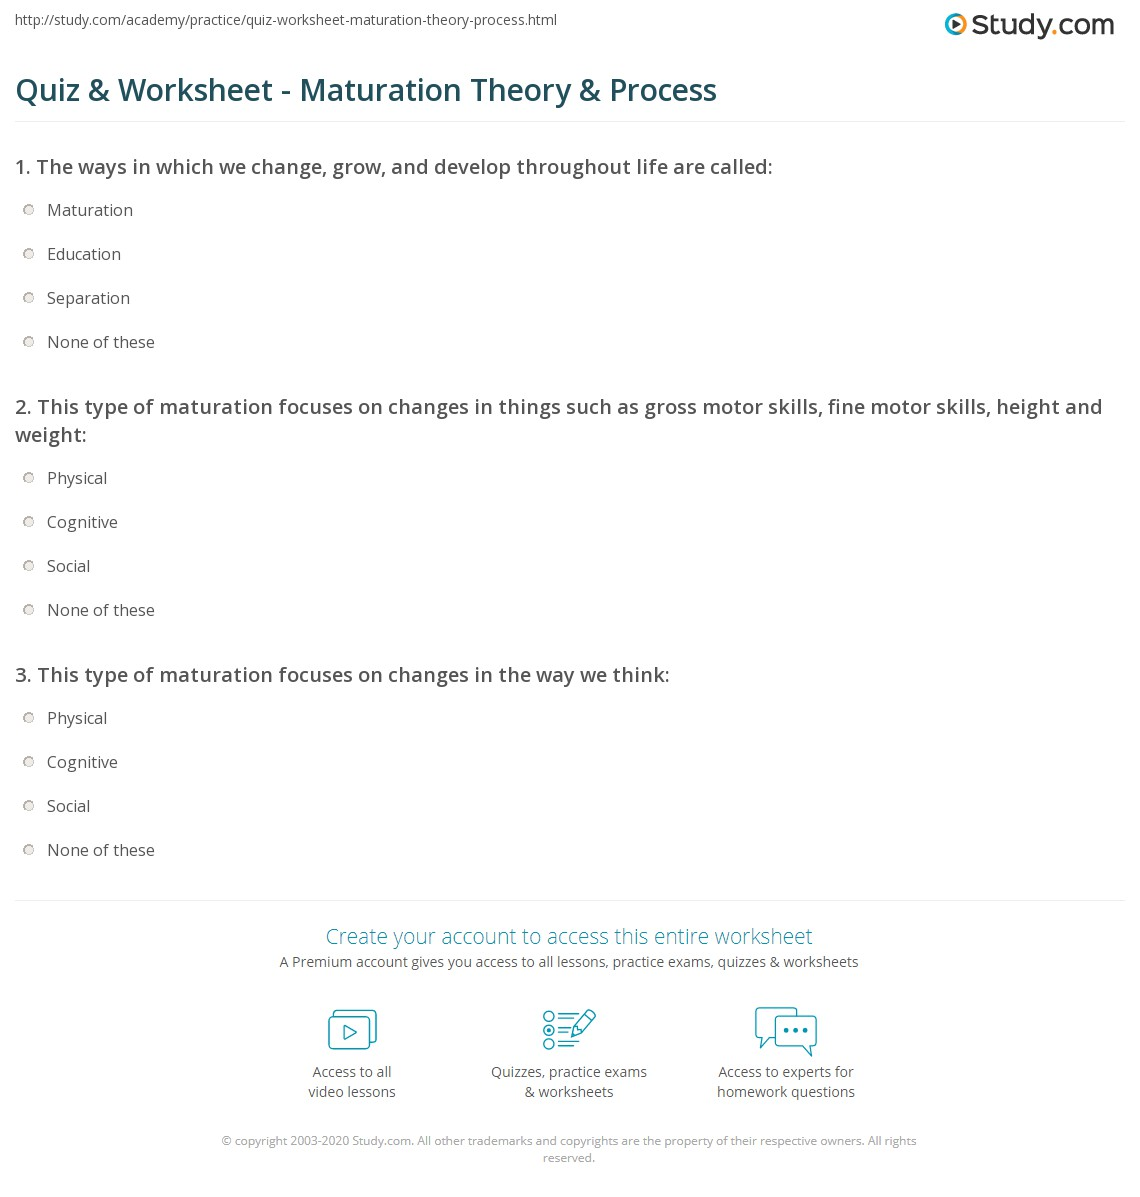 Quiz worksheet maturation theory process study print what is maturation definition theory process worksheet malvernweather Choice Image